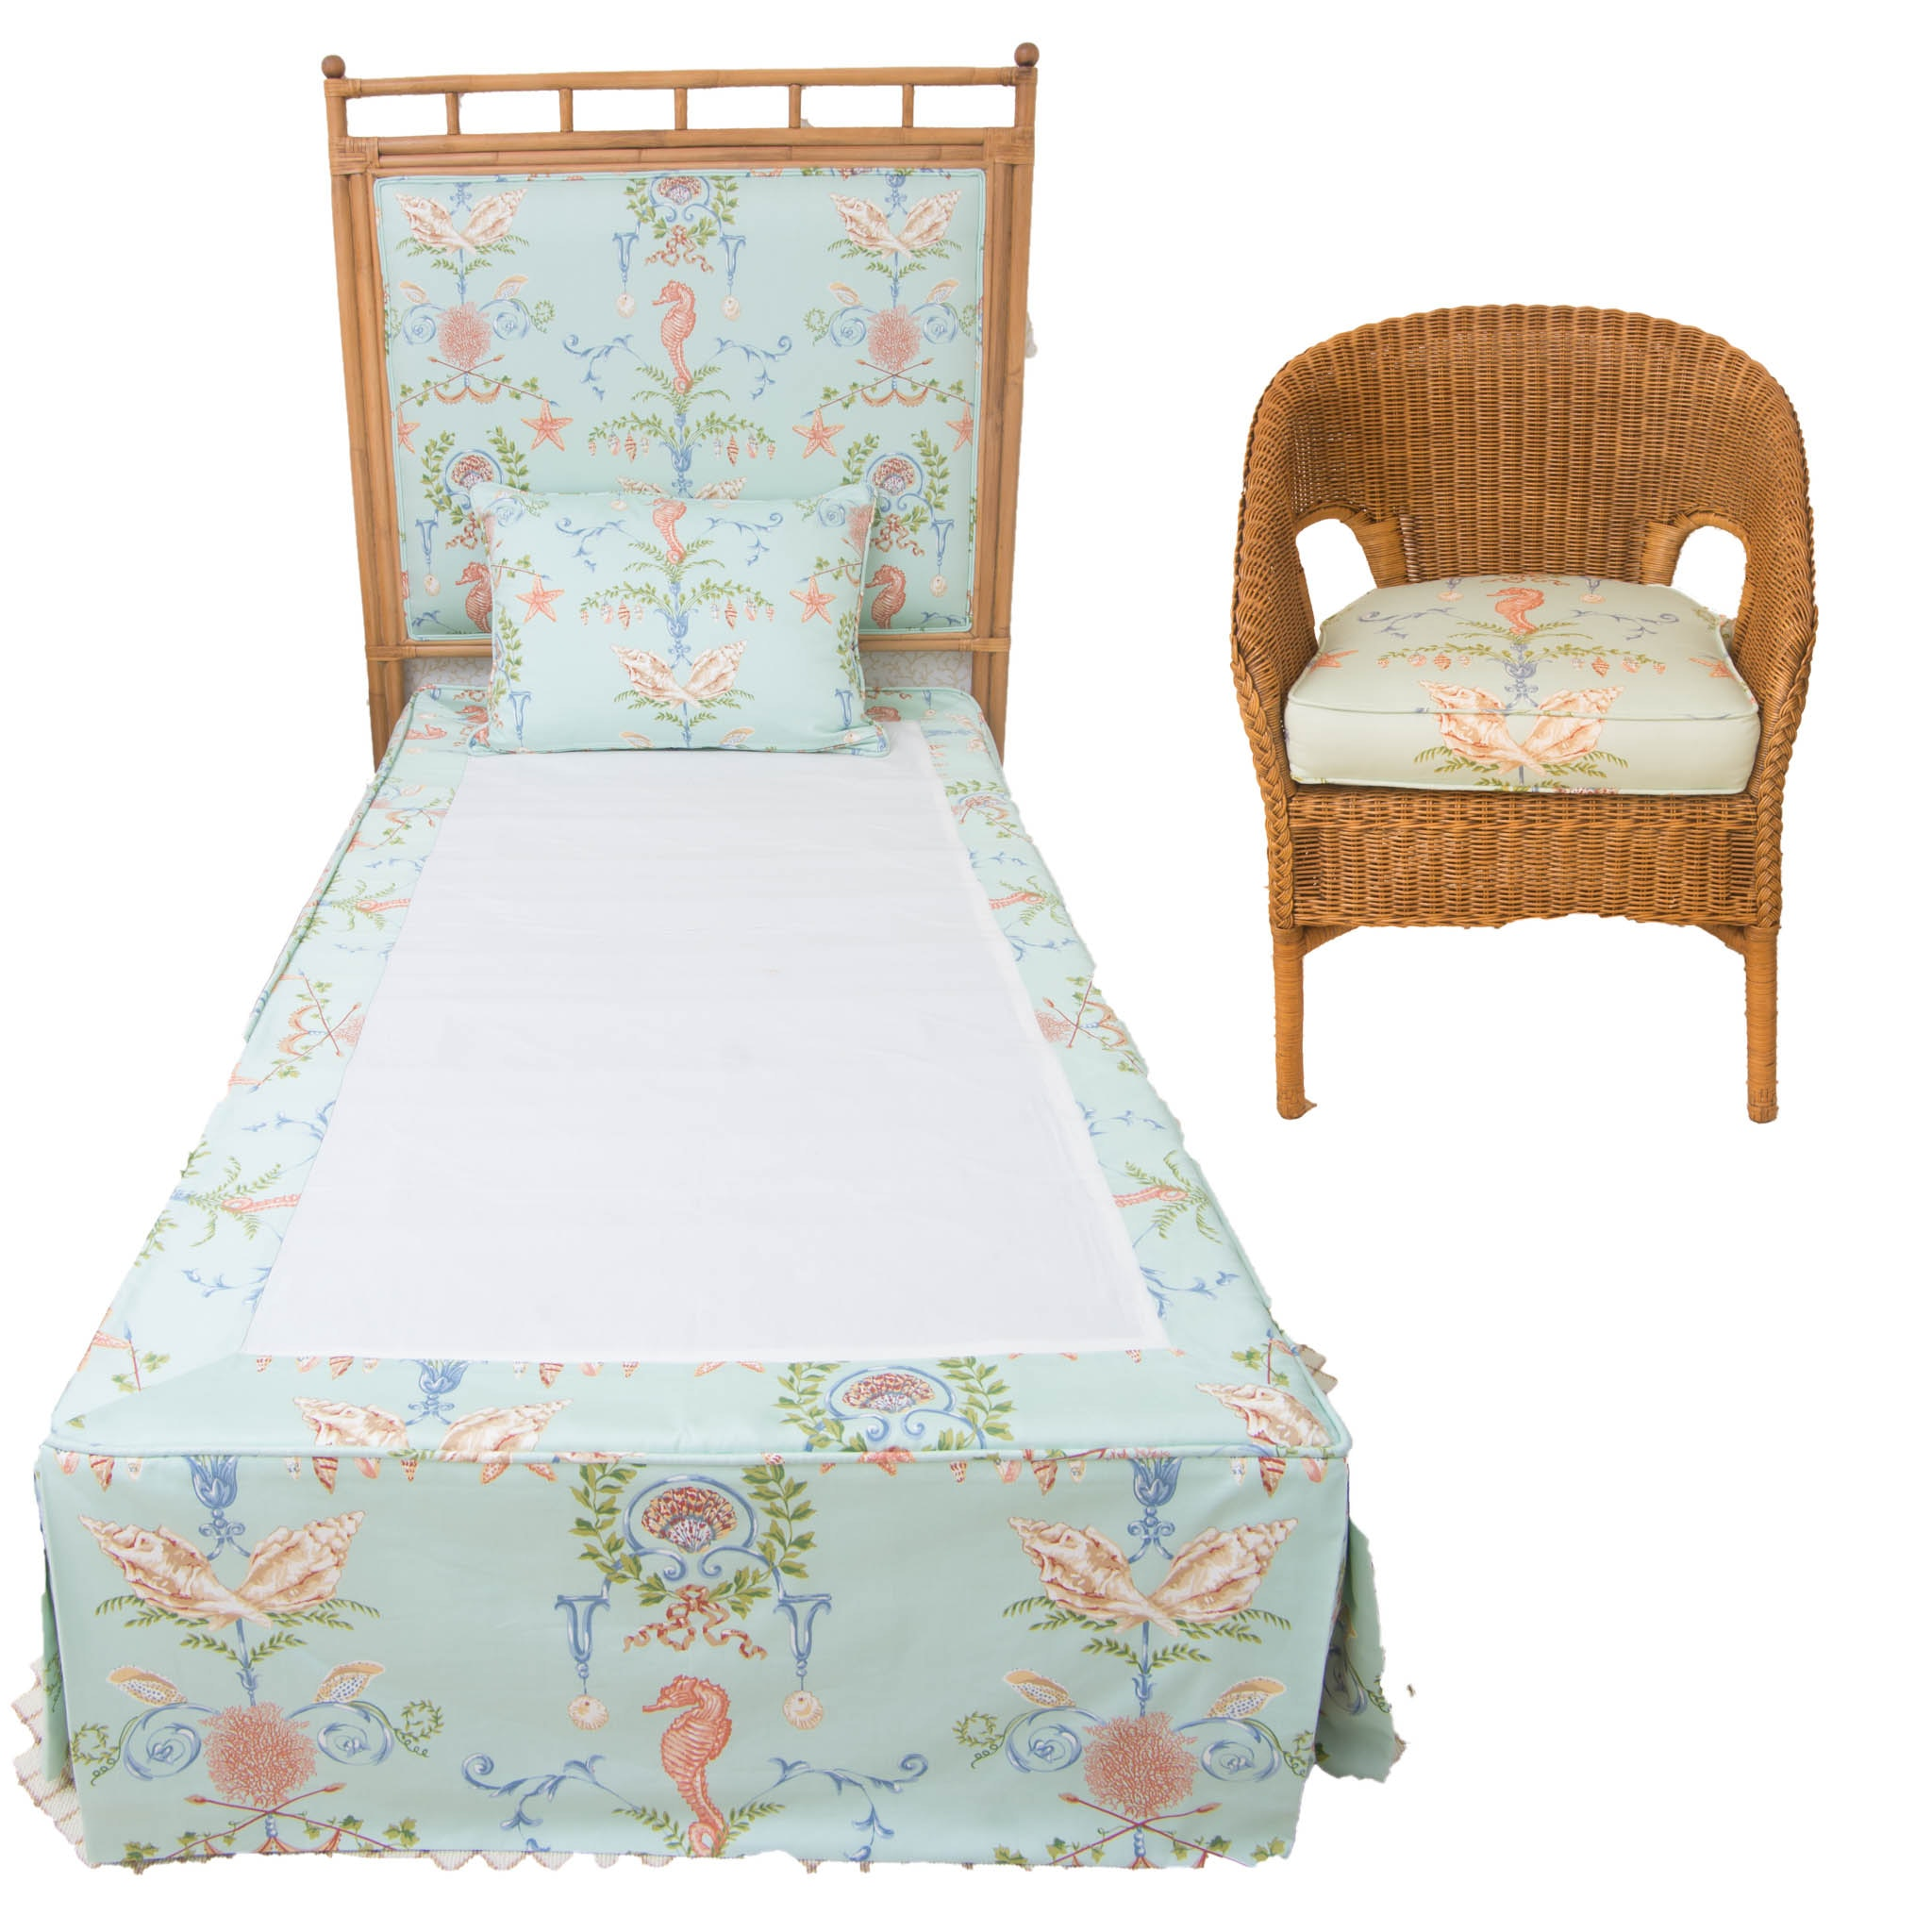 Bamboo Headboard and Wicker Chair With Matching Shell and Seahorse Upholstery